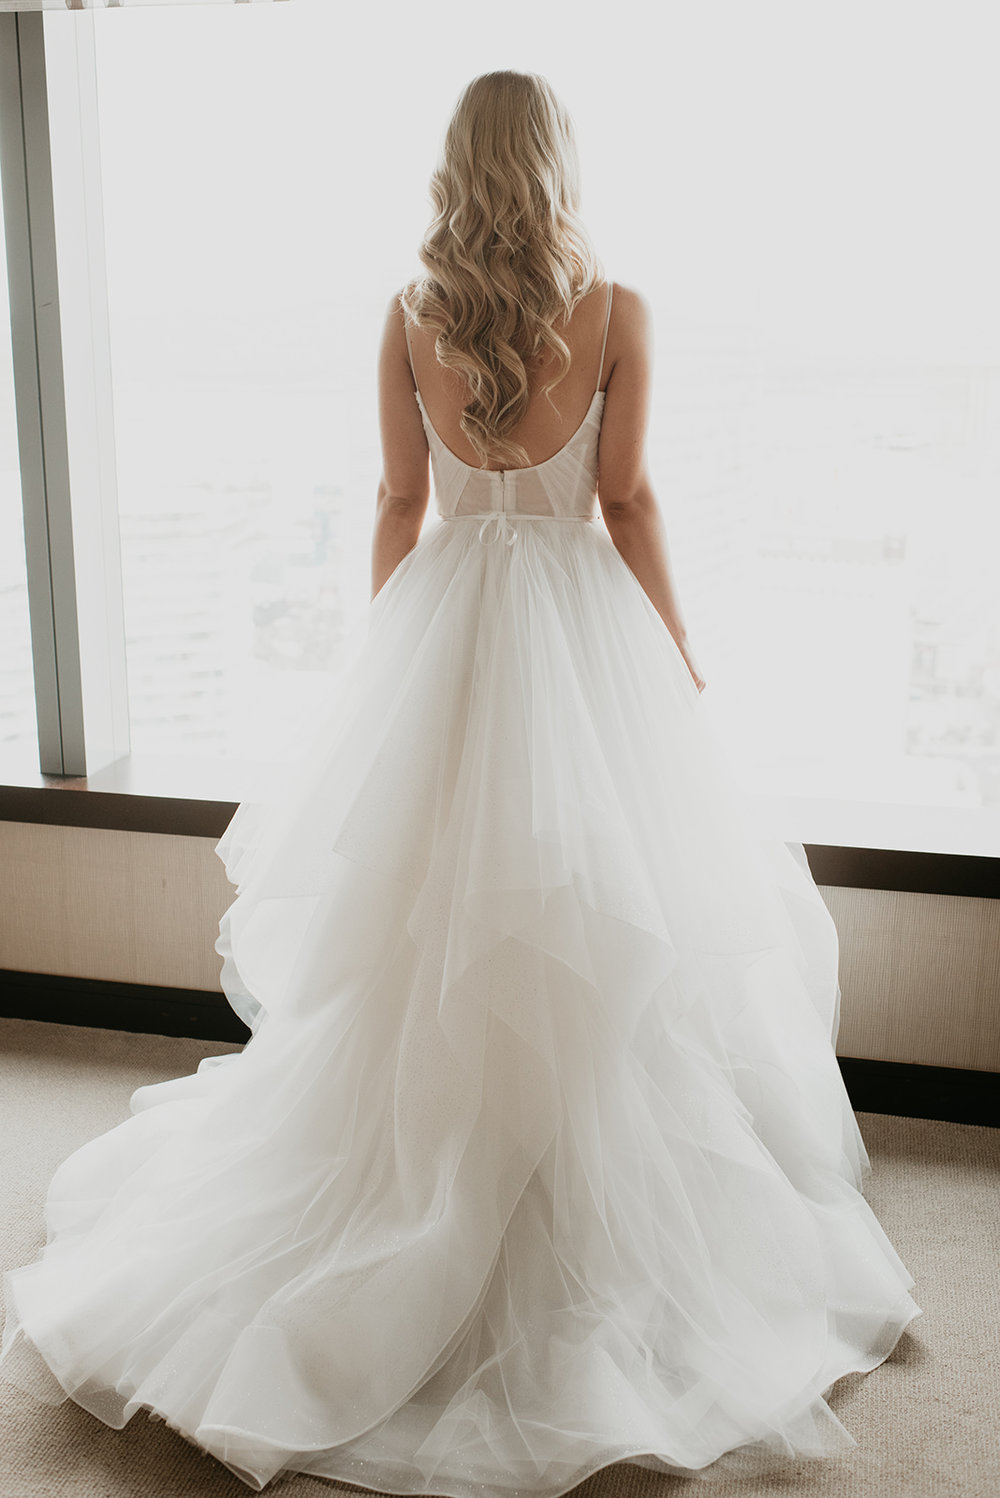 Fragoso Wedding in Las Vegas, NV - Back of the Dress